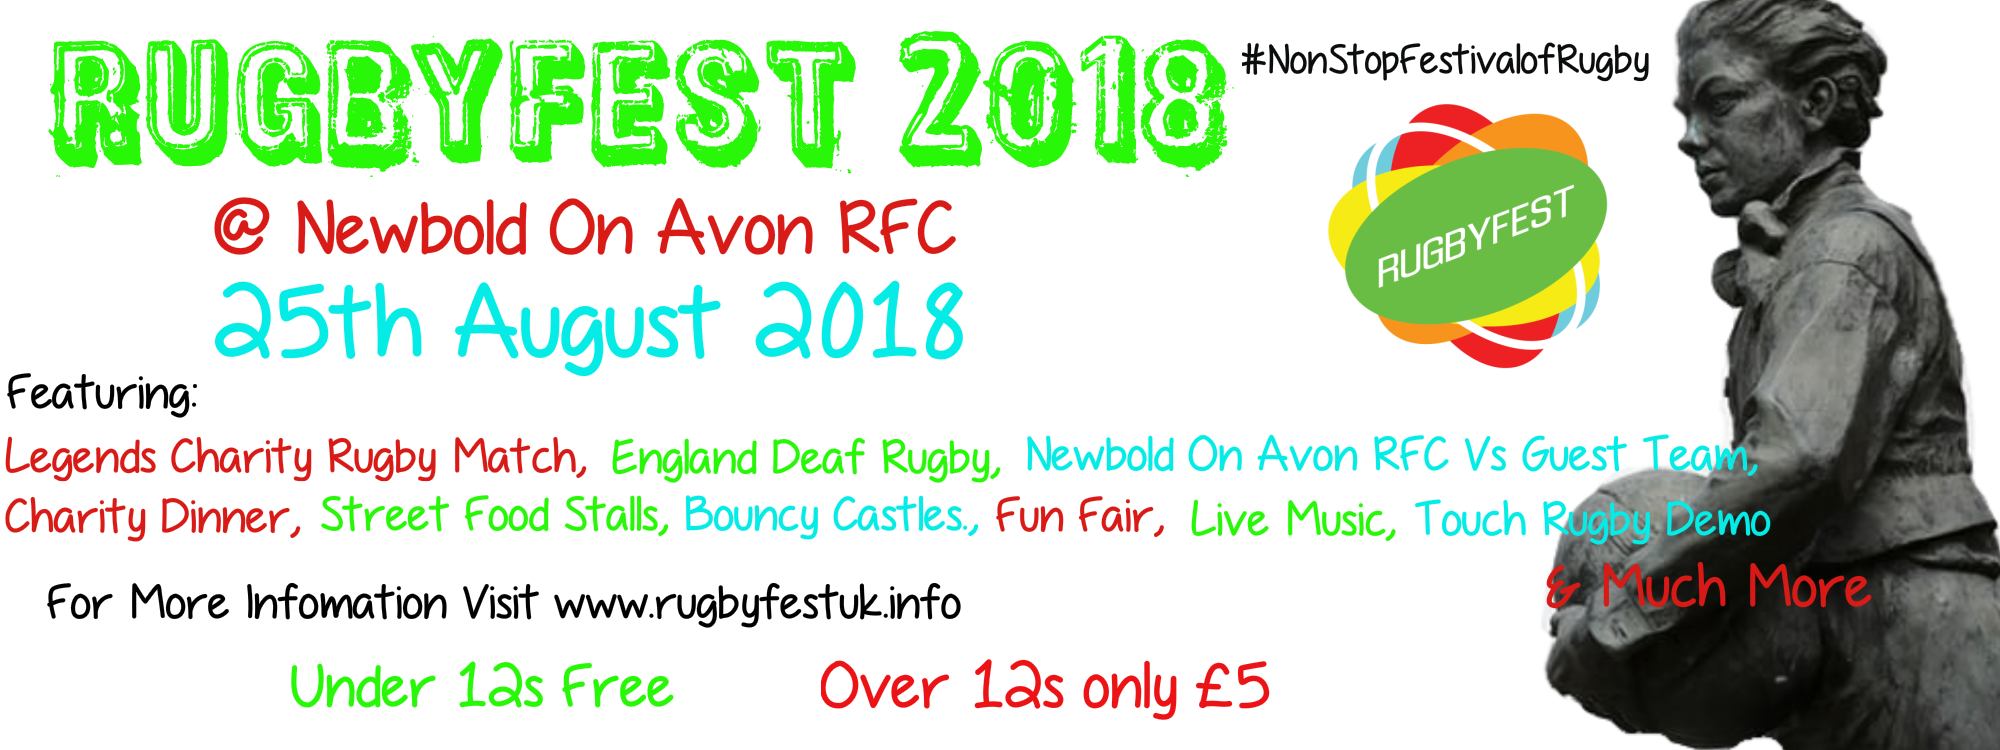 Rugby Fest 2018